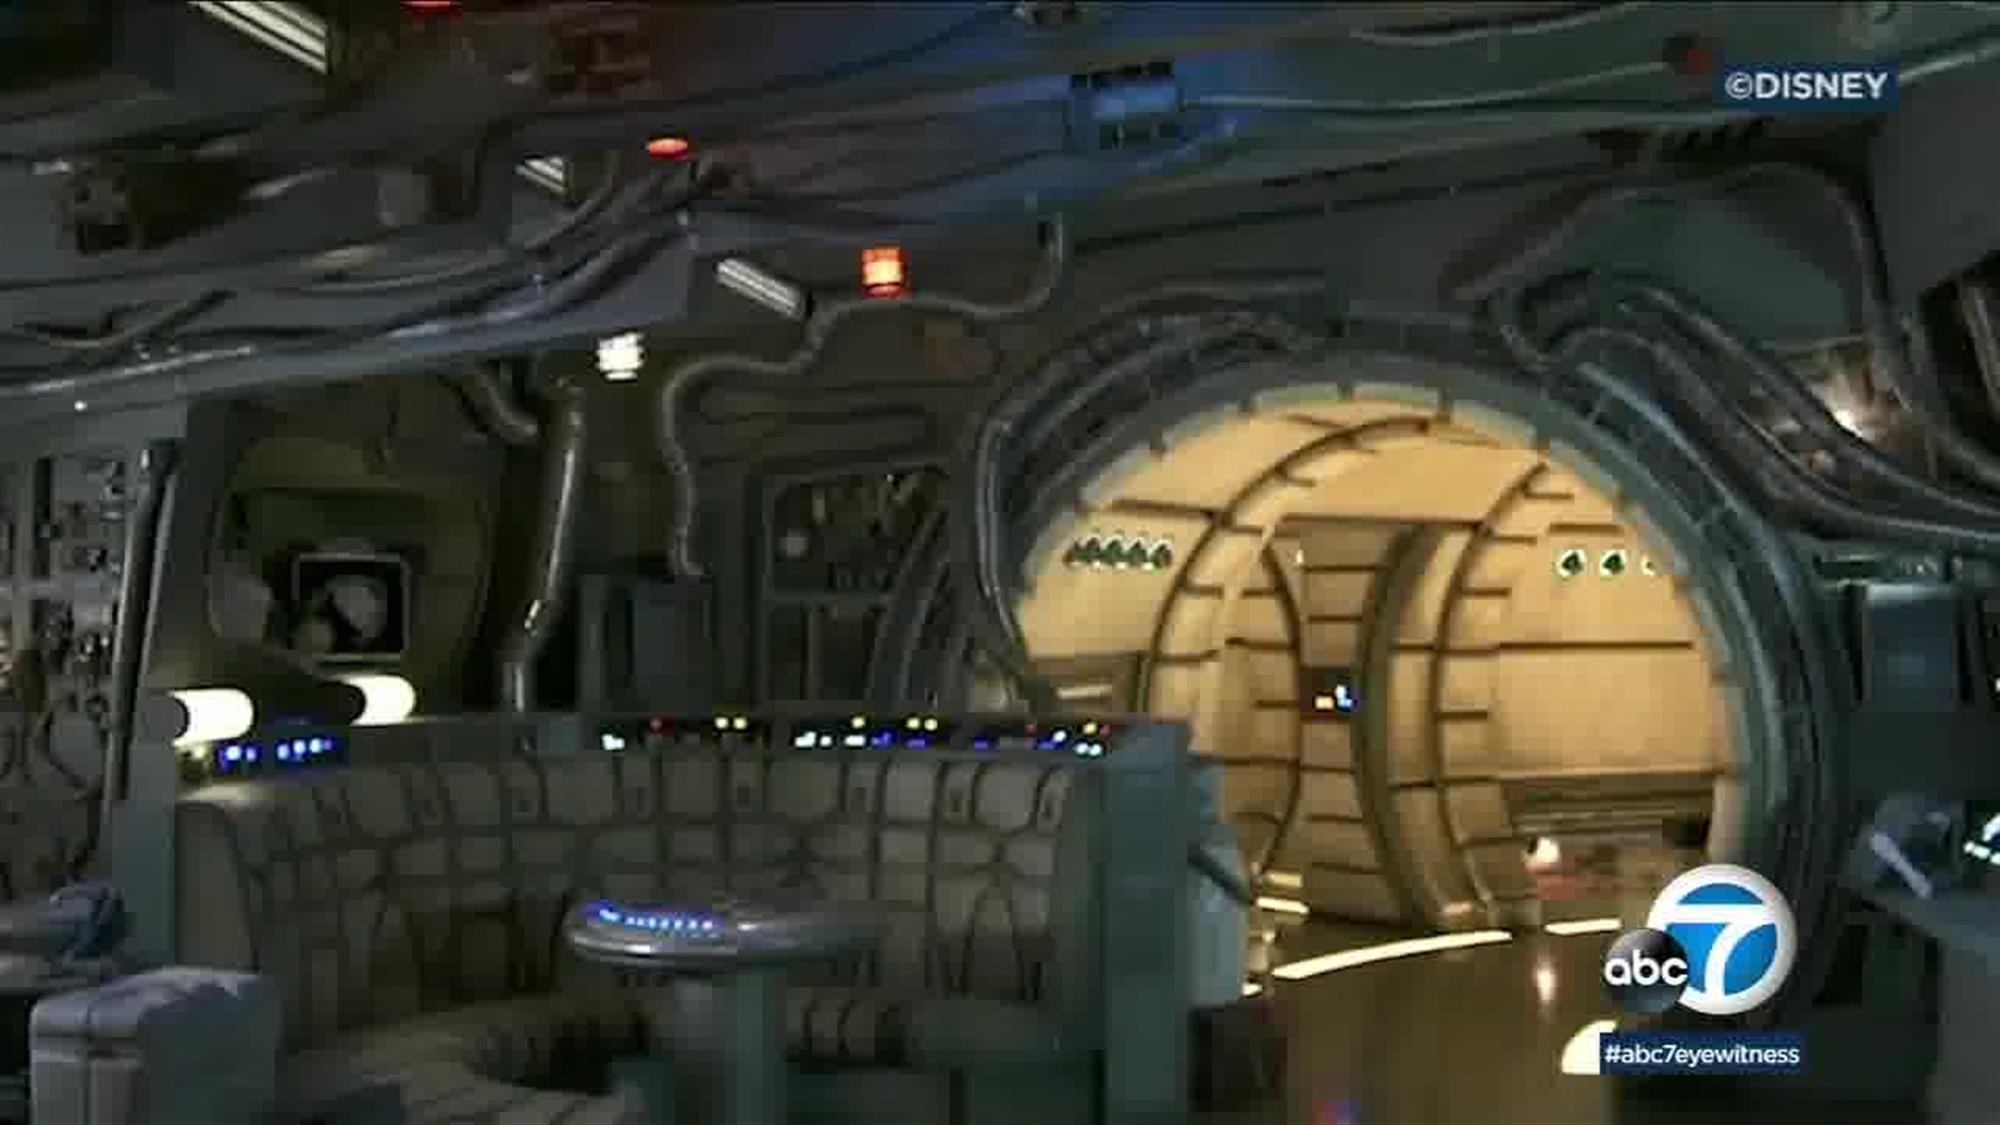 One of the most famous and memorable scenes in the original Star Wars movie takes place in this section of the Falcon's living quarters, which features a Dejarik (or Holochess) board for the crew's recreation.